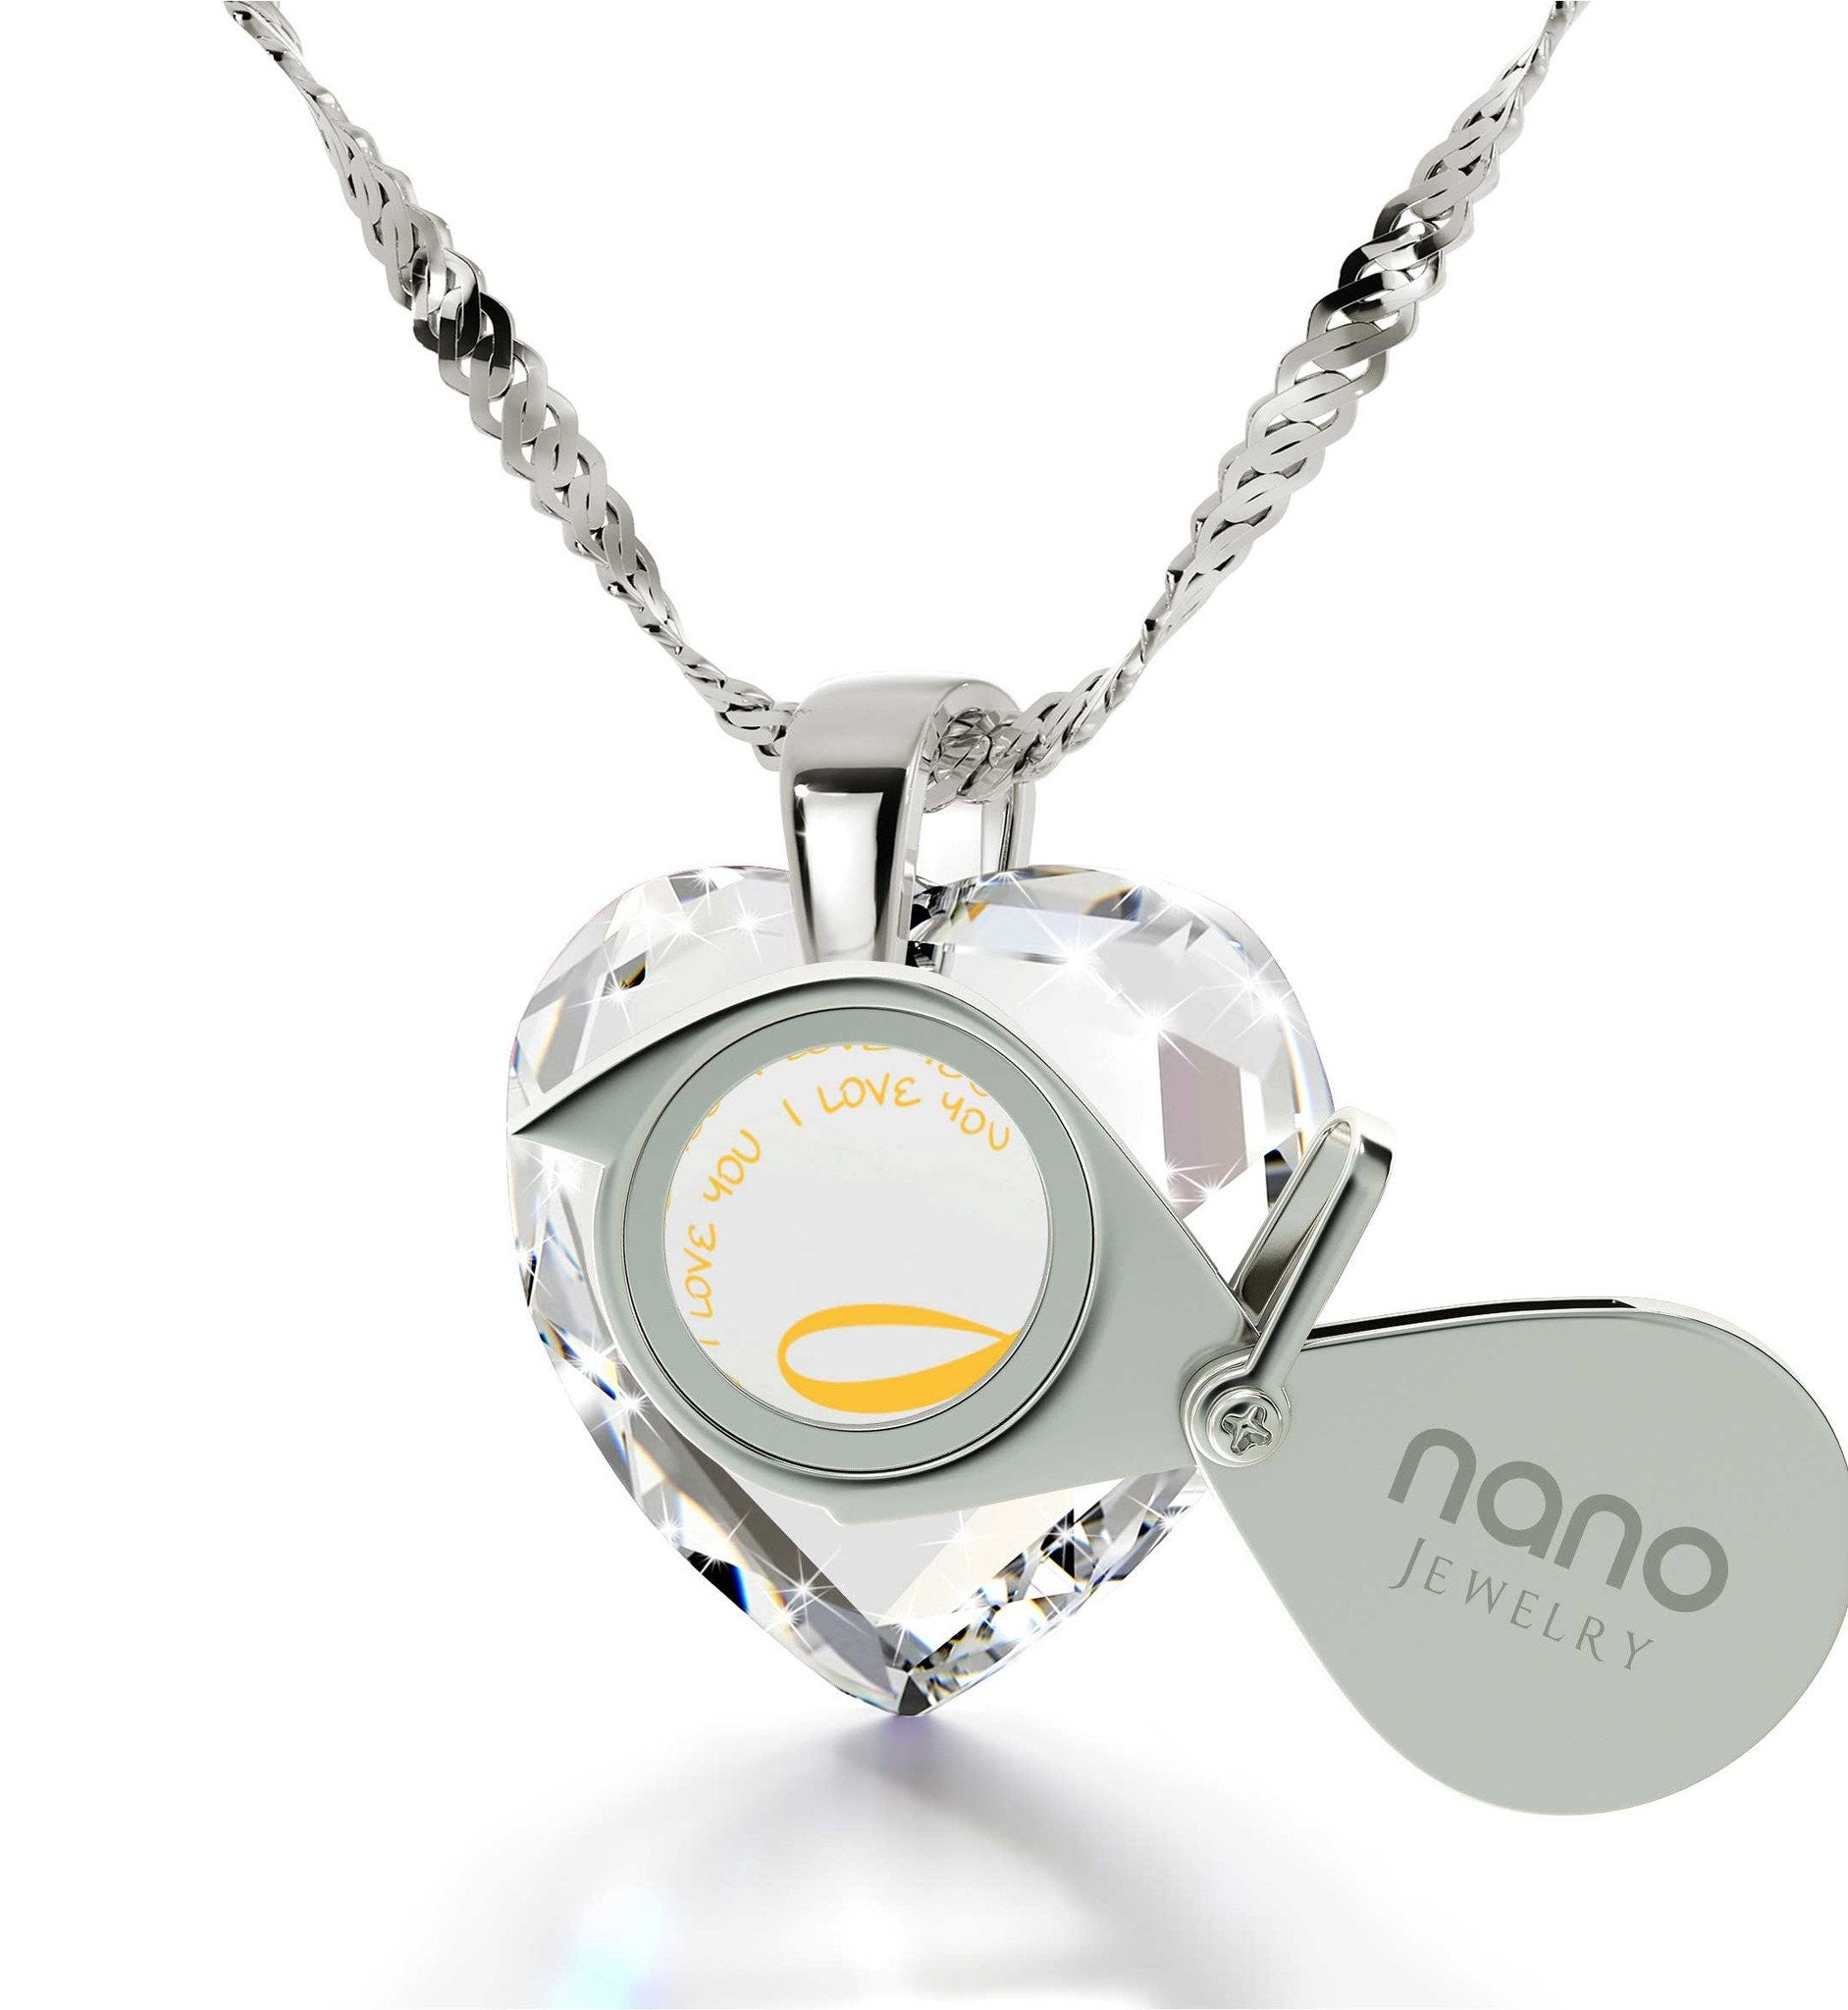 """I Love You"" Forever Necklace, Crystal CZ Jewelry, Best Valentine's Day Gift for Her, by Nano Jewelry"